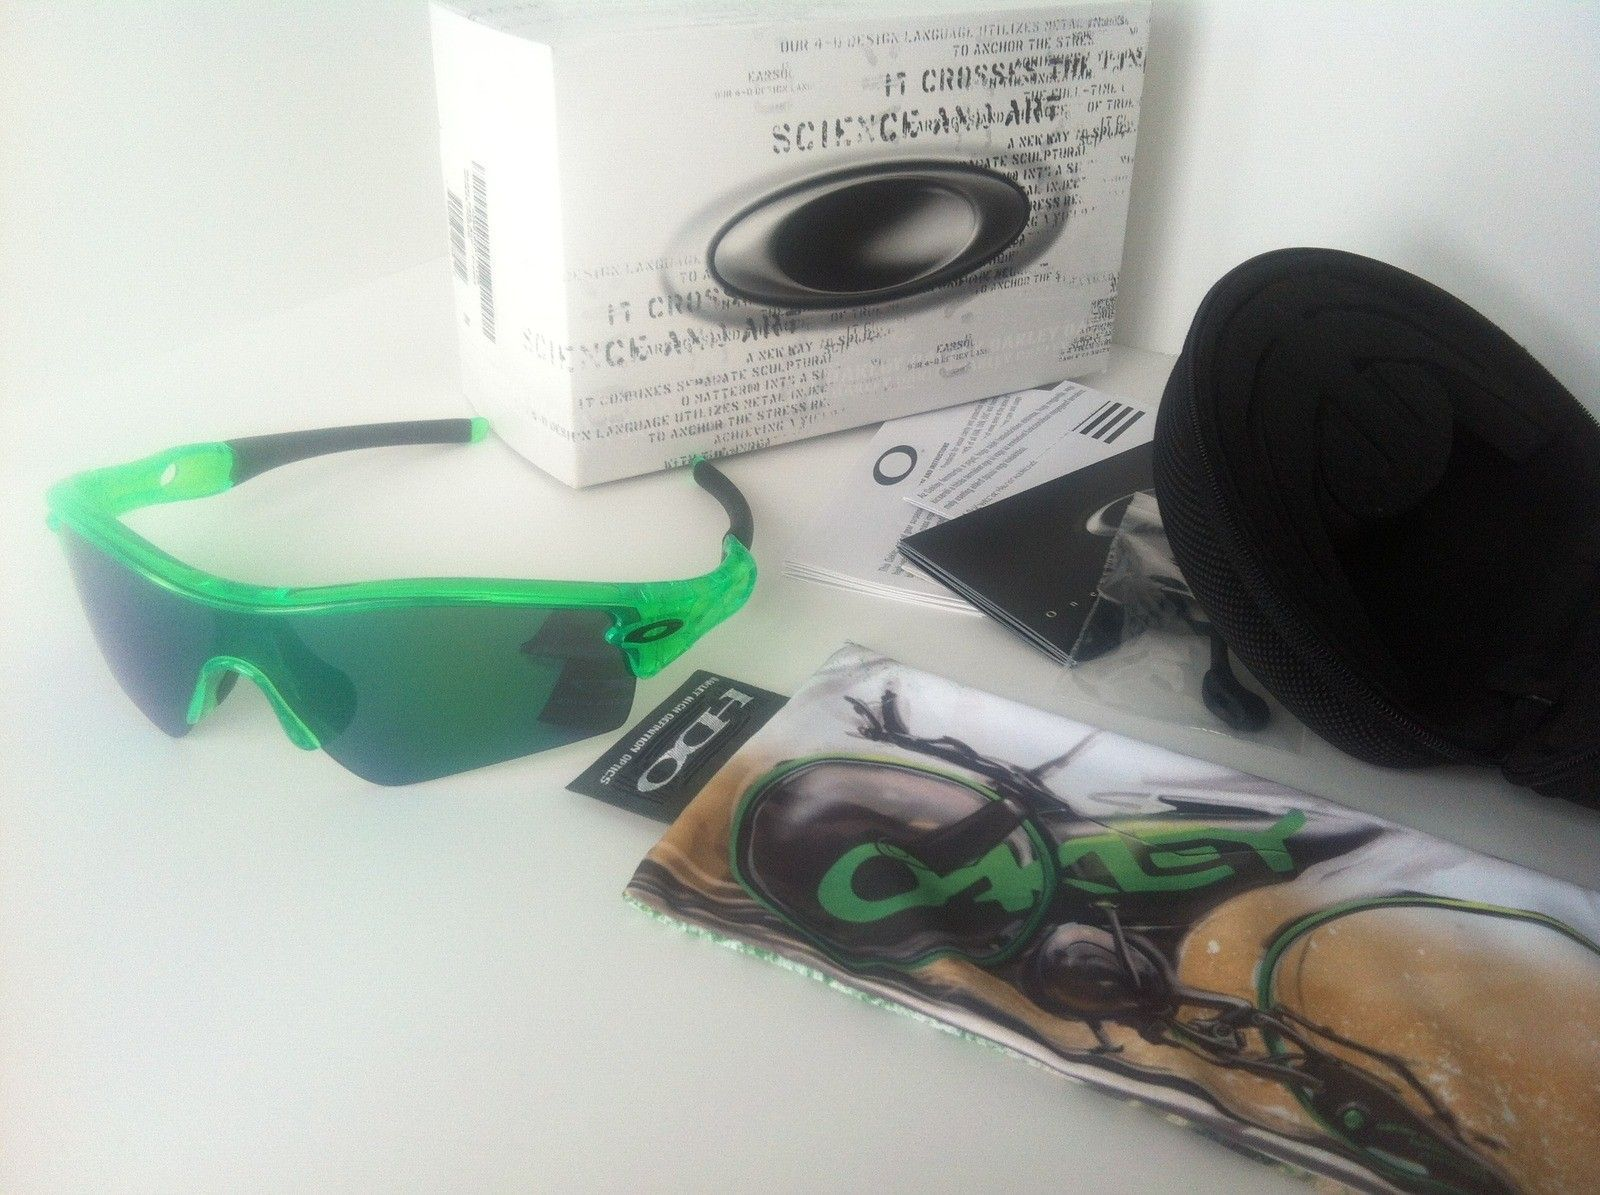 FOR SALE: TdF Anti Freeze Radar Path W Jade Iridium - Tour De France BNIB Complete - antifrzradpathtdf03.jpg